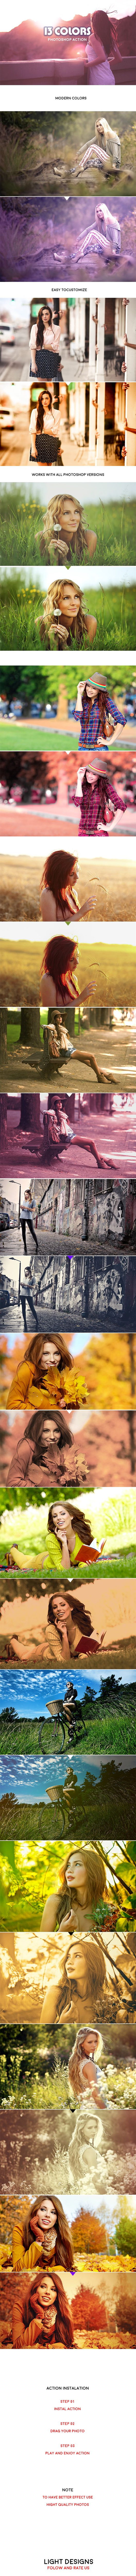 13 Colors  Photoshop Action #21 — Photoshop ATN #action #photo effects • Available here → https://graphicriver.net/item/13-colors-photoshop-action-21/18139934?ref=pxcr